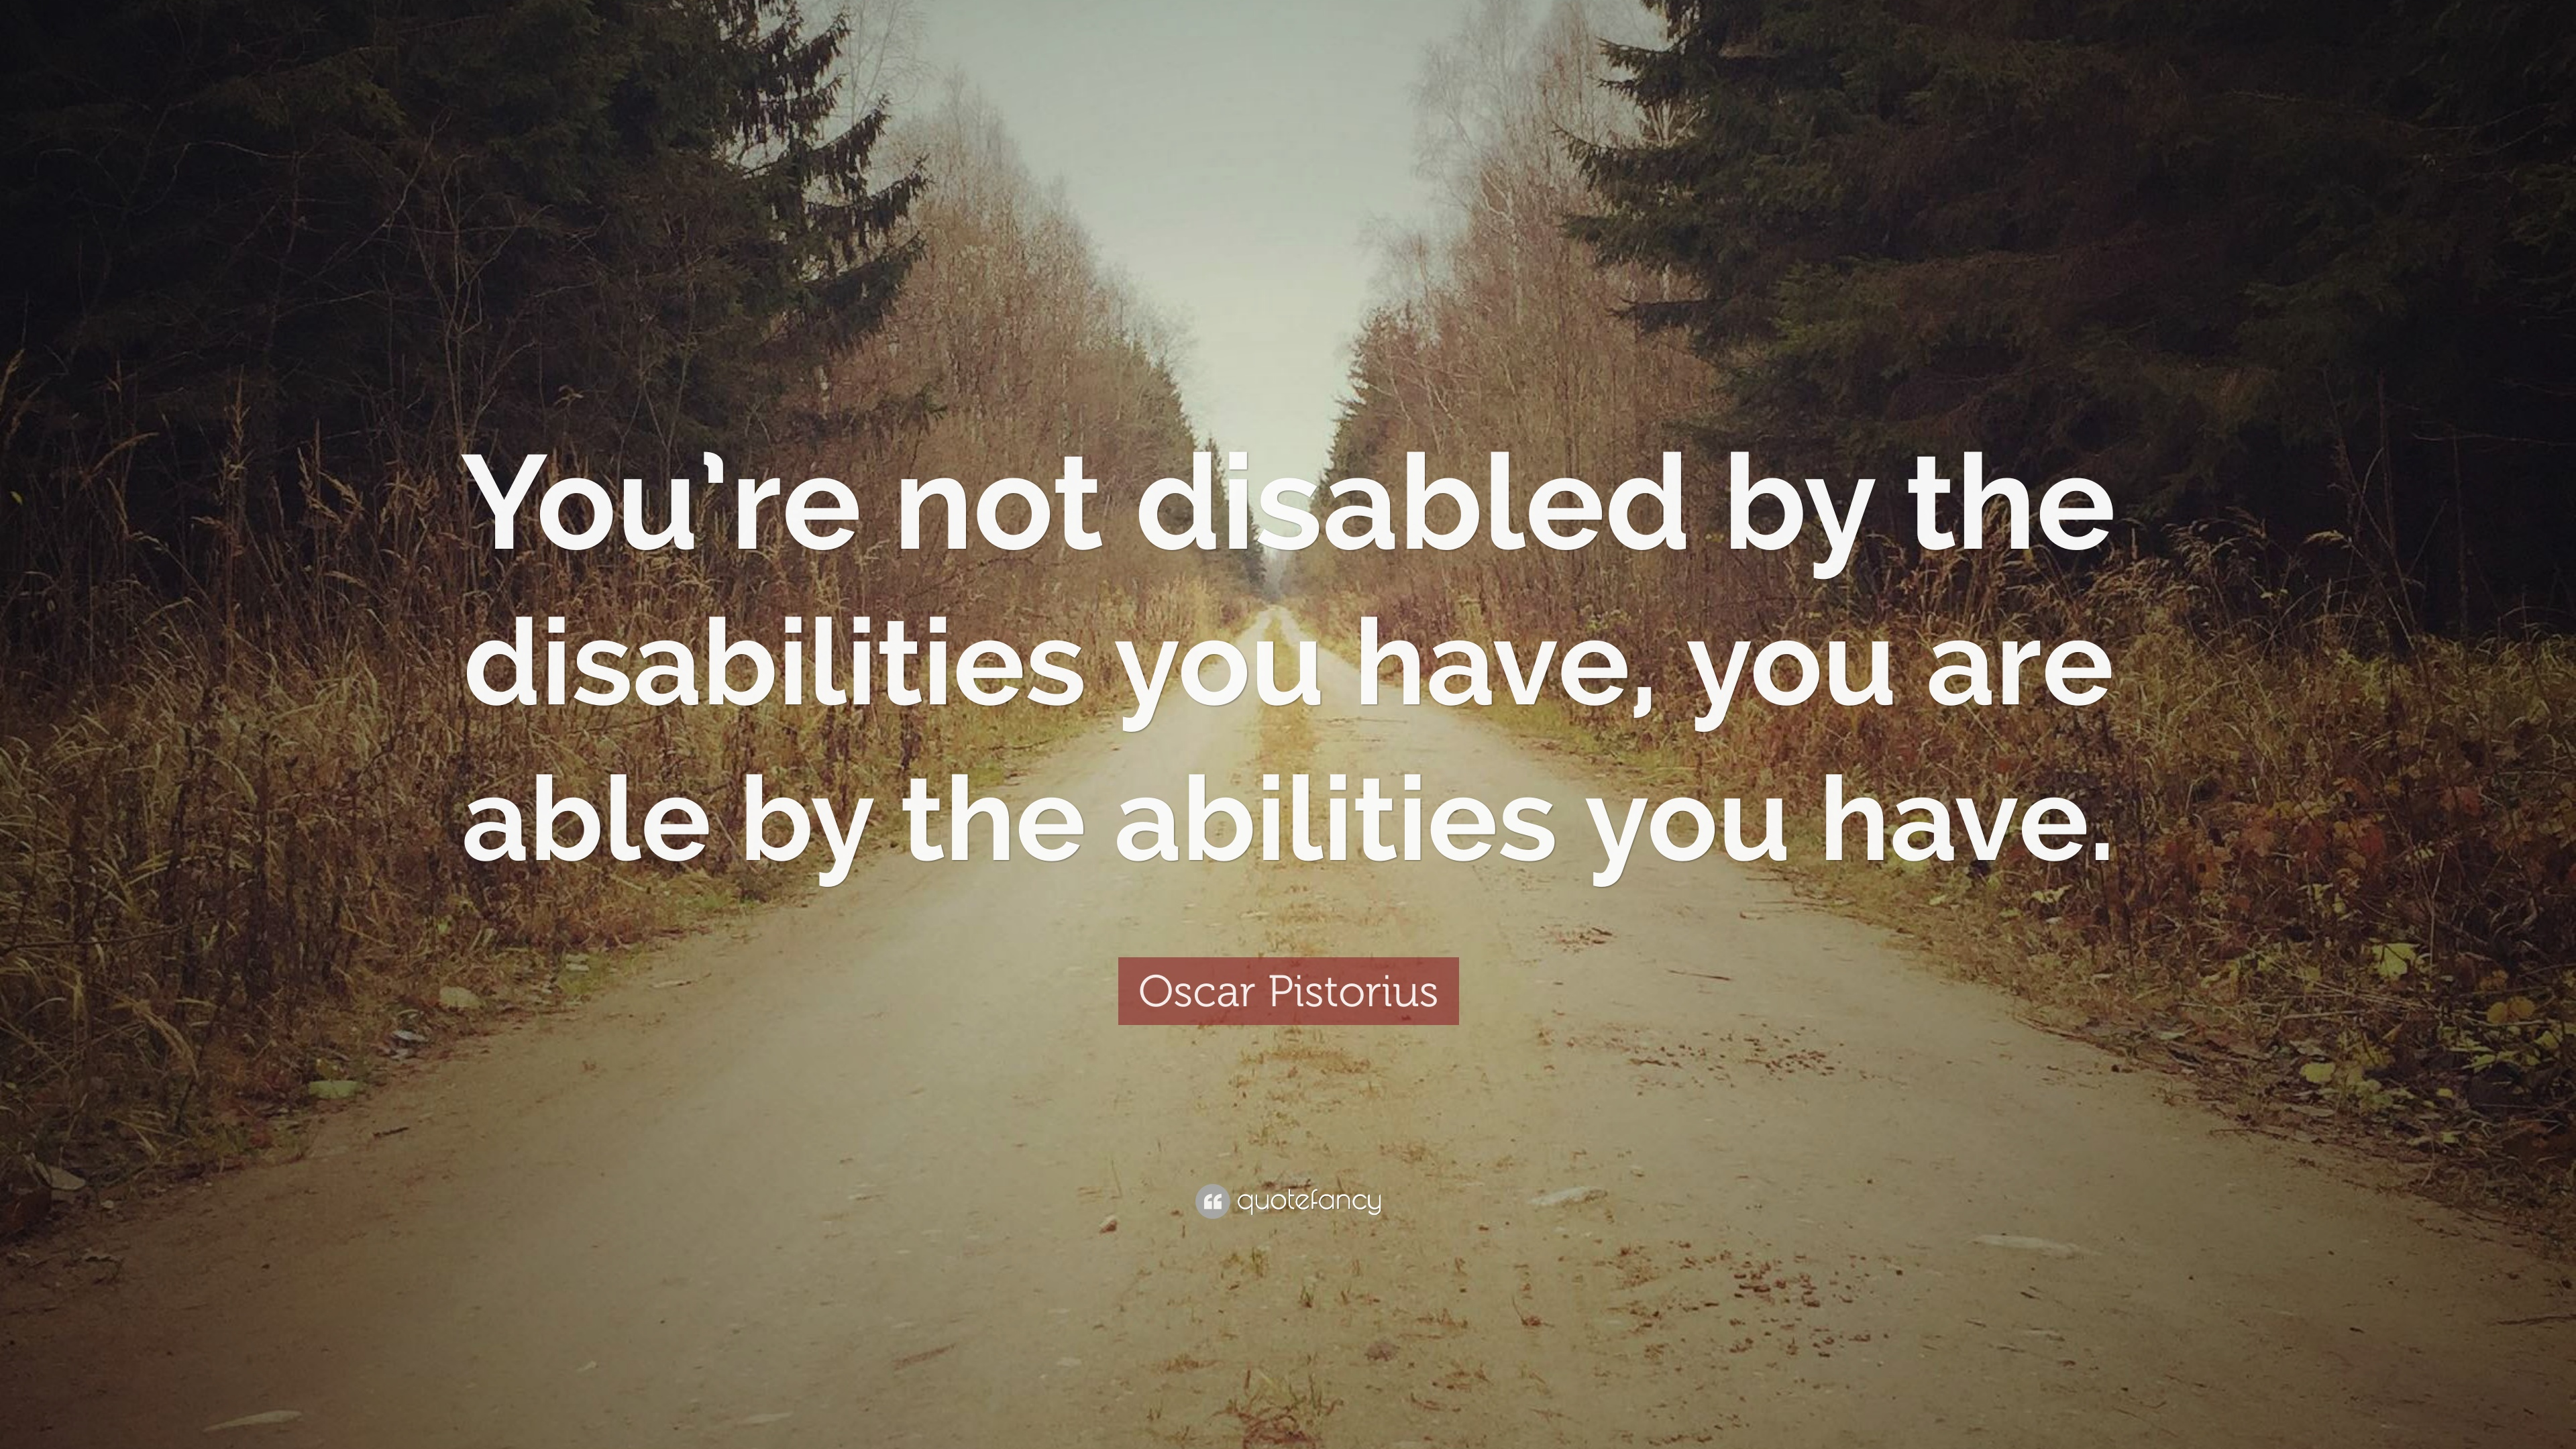 Quotes About Disabilities Oscar Pistorius Quotes 30 Wallpapers  Quotefancy